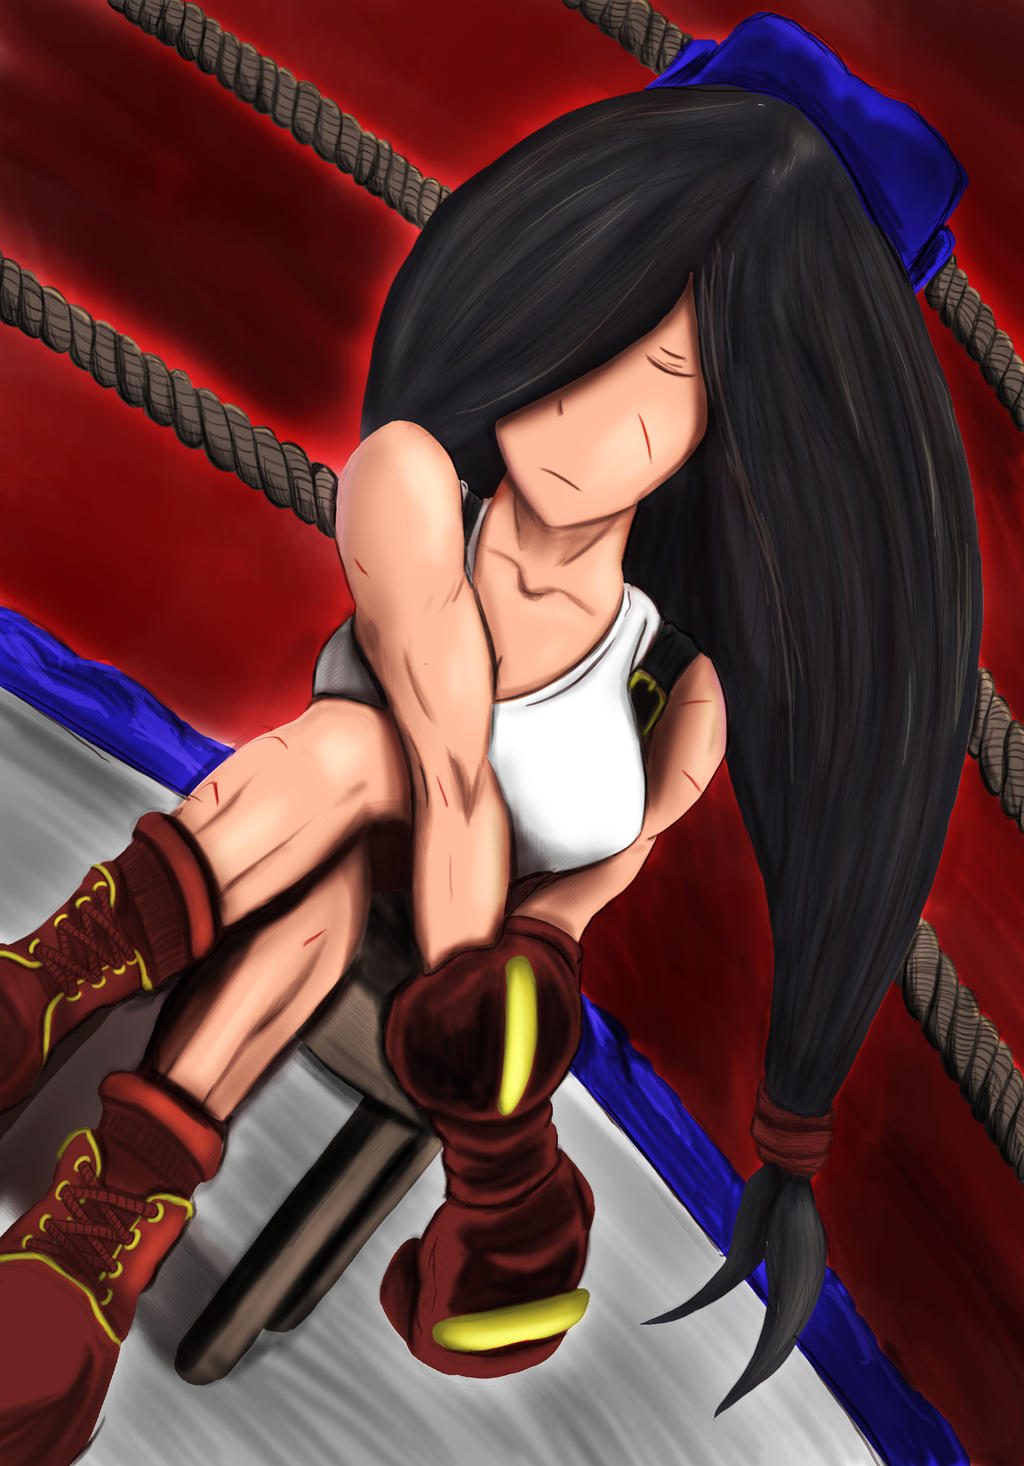 In The Ring - Coloured